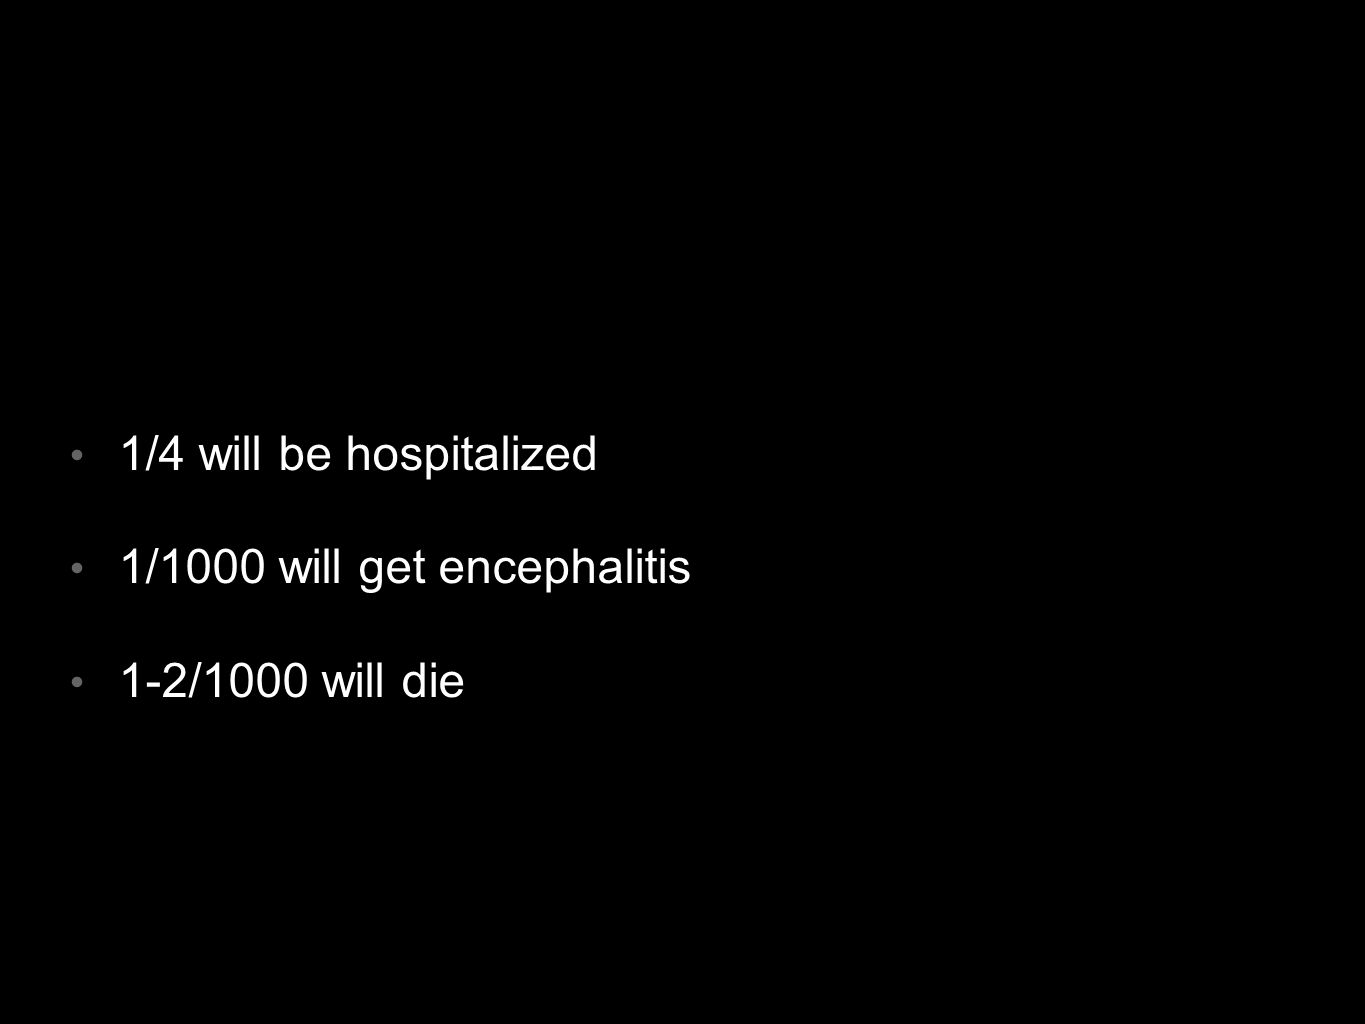 1/4 will be hospitalized 1/1000 will get encephalitis 1-2/1000 will die